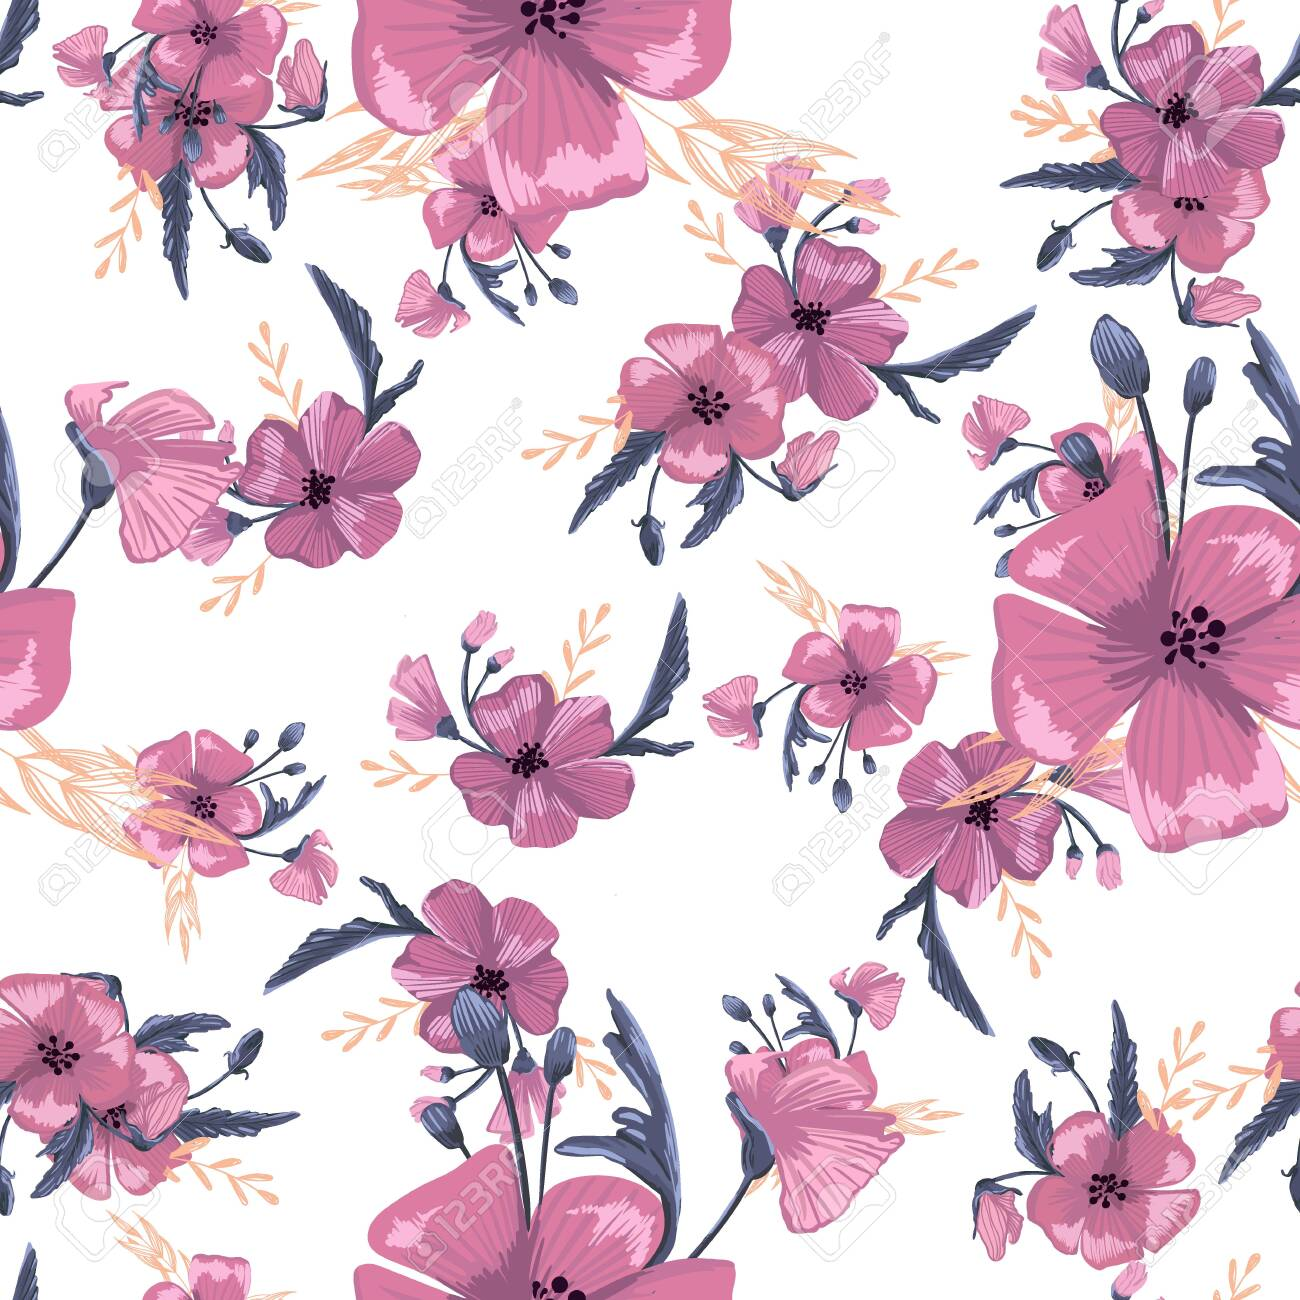 Fashionable cute pattern in native popies flowers. Flower seamless background for textiles, fabrics, covers, wallpapers, print, gift wrapping or any purpose - 147108690